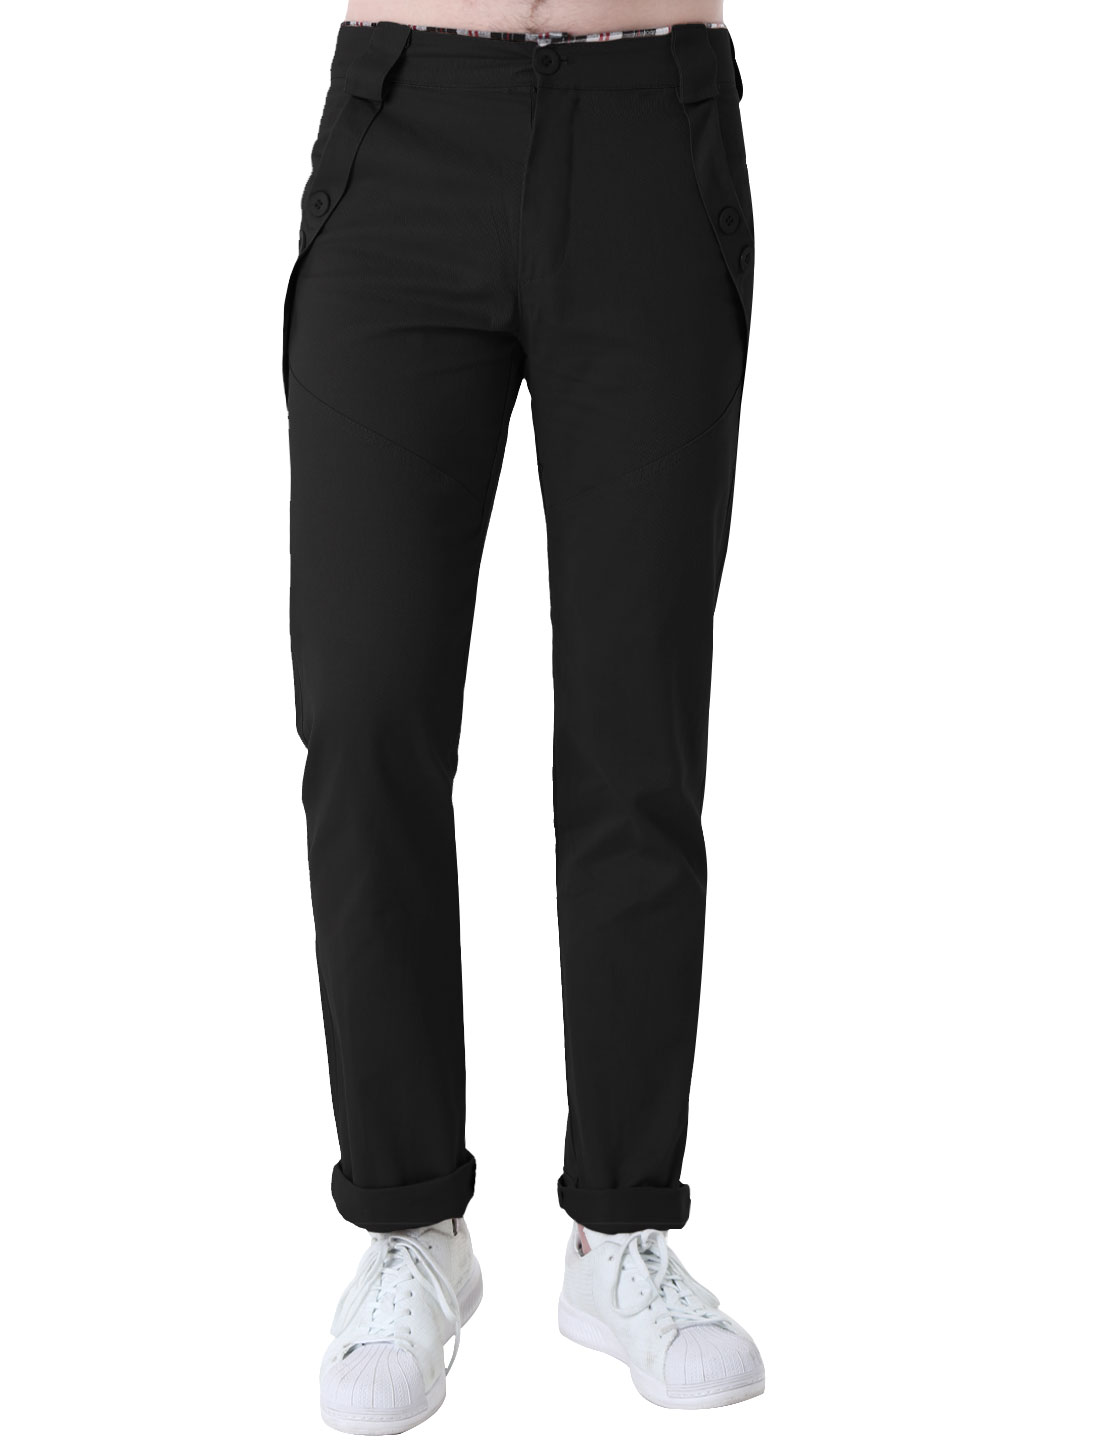 Men Black Casual Slant Pockets Front Plaids Waist Pants Trousers W32